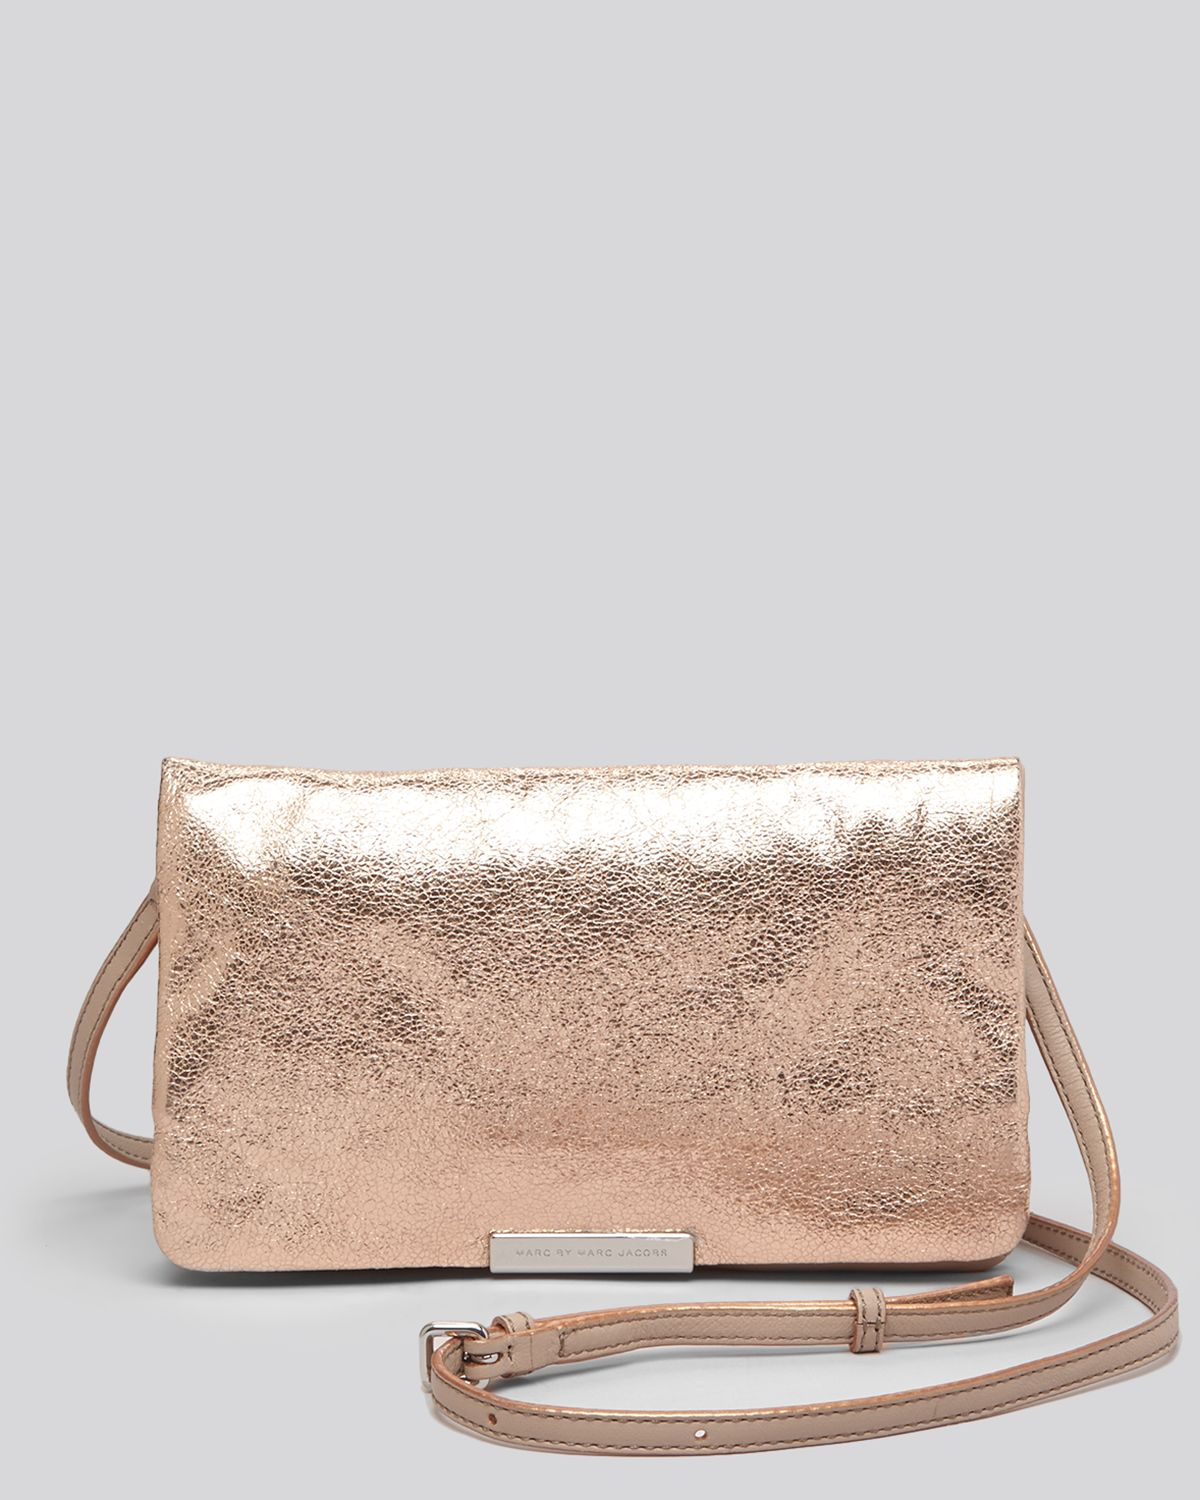 Marc by marc jacobs Raveheart Metallic Clutch in Pink